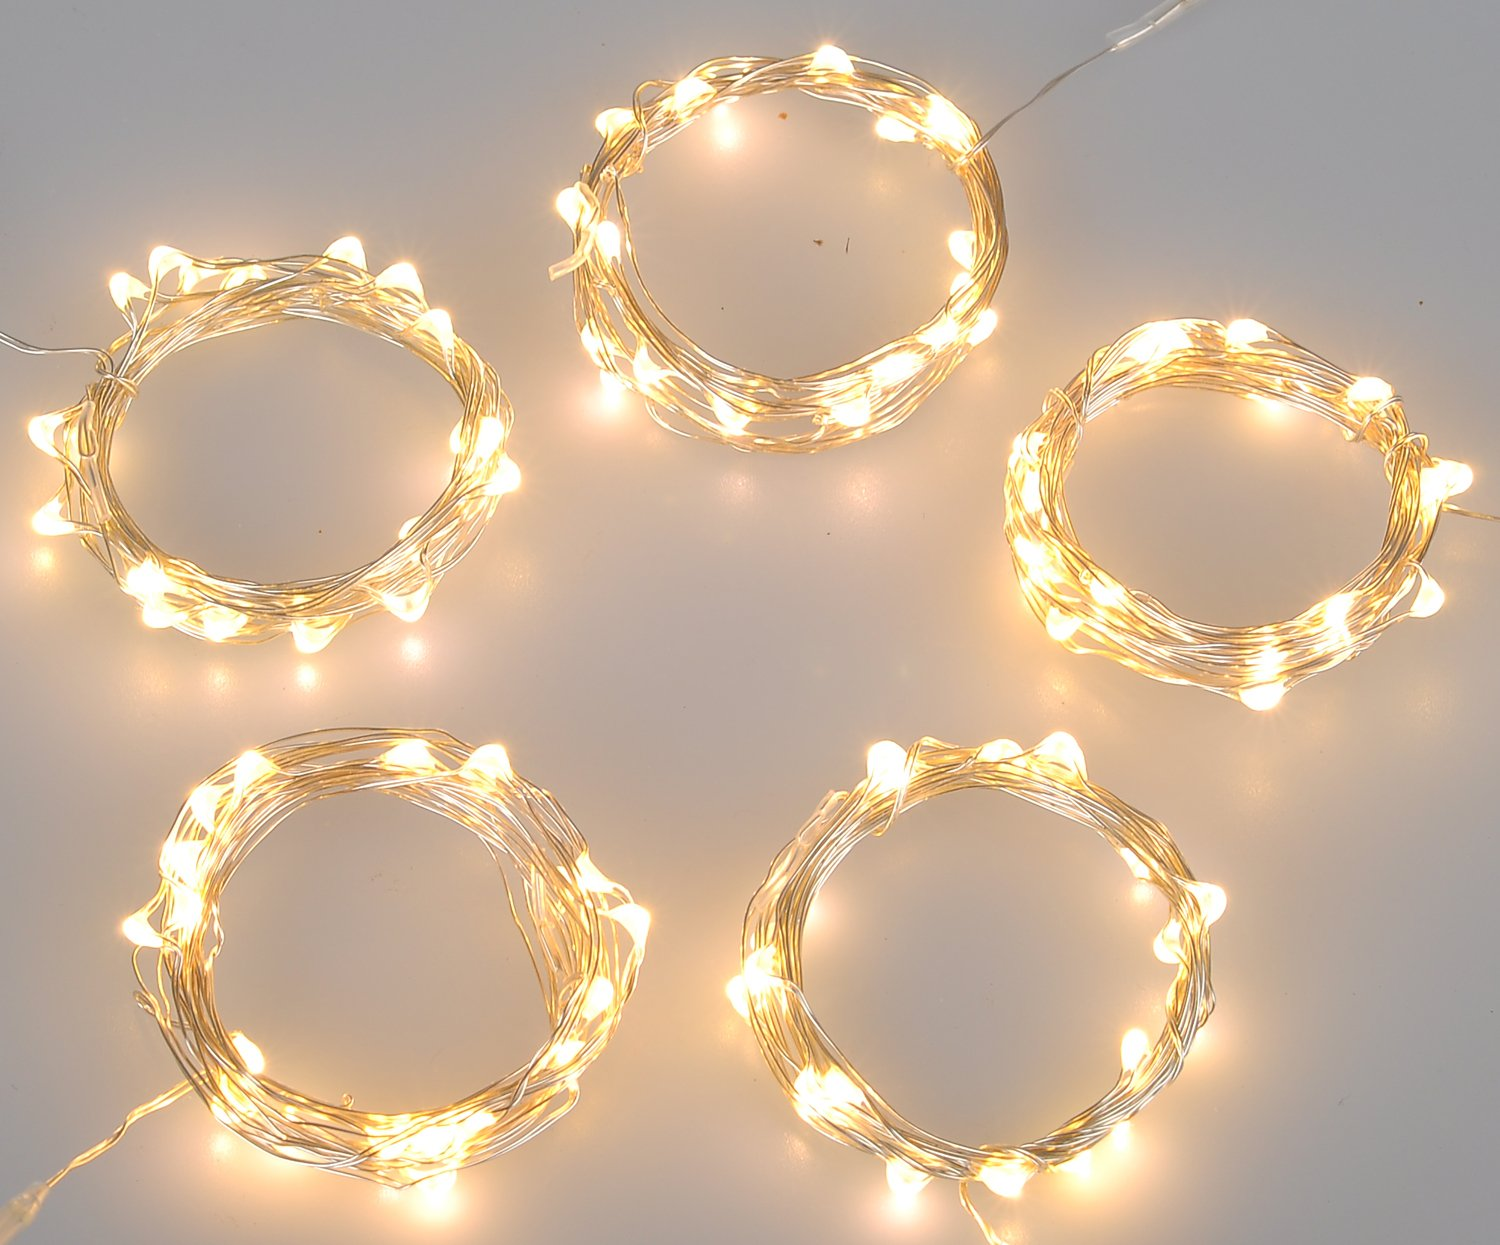 Amazon.com: Improved Design with Timer Set of 5 Micro LED 20 Warm ...